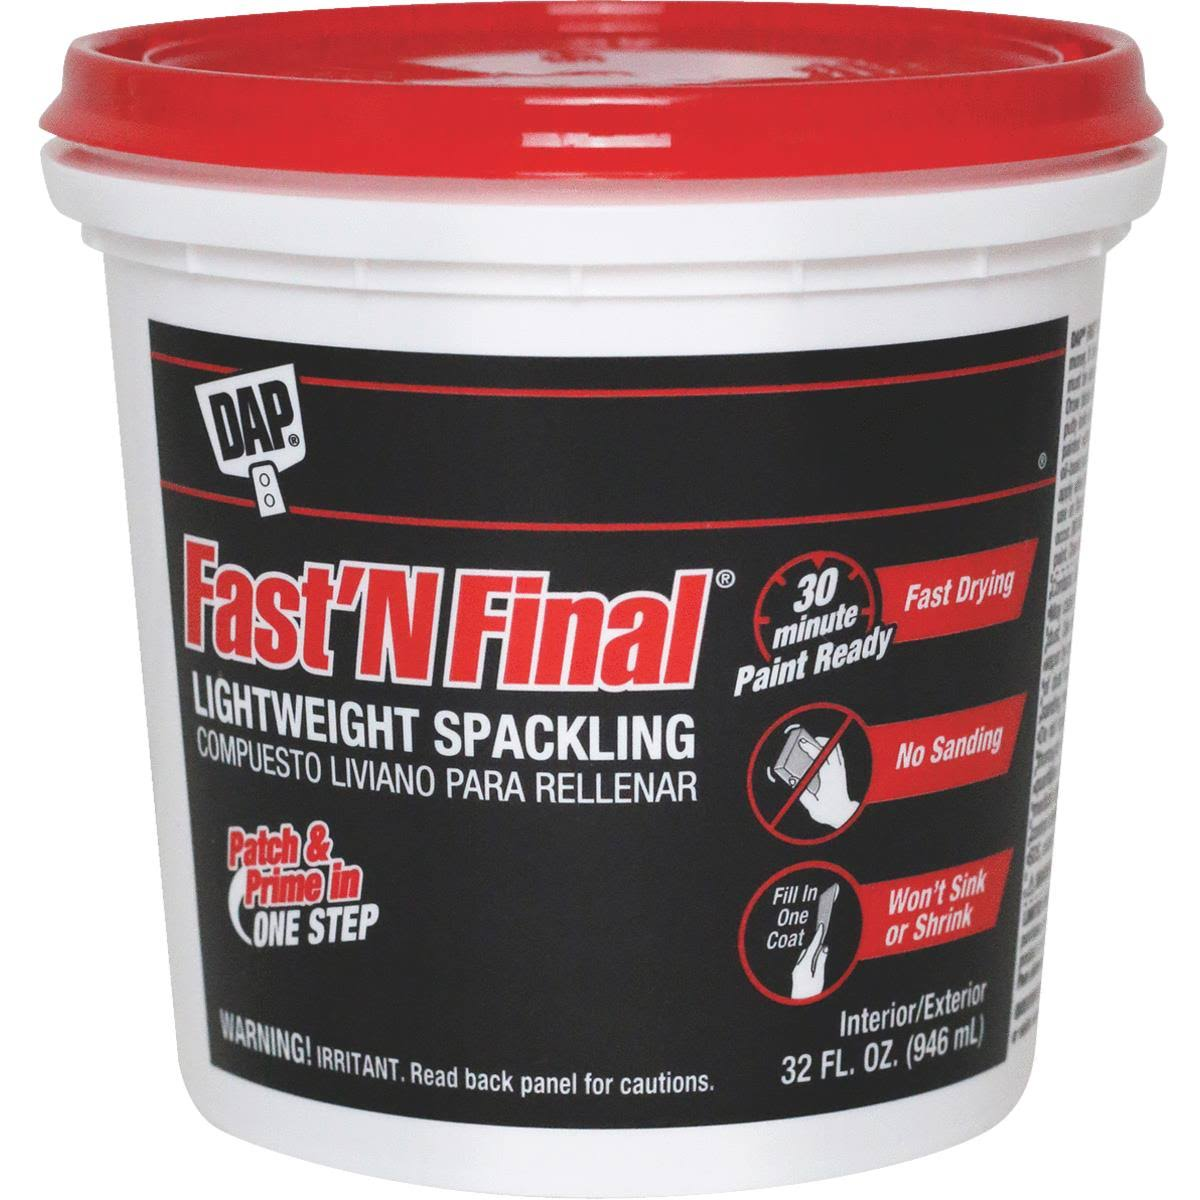 Dap Fast N Final Interior and Exterior Lightweight Spackling